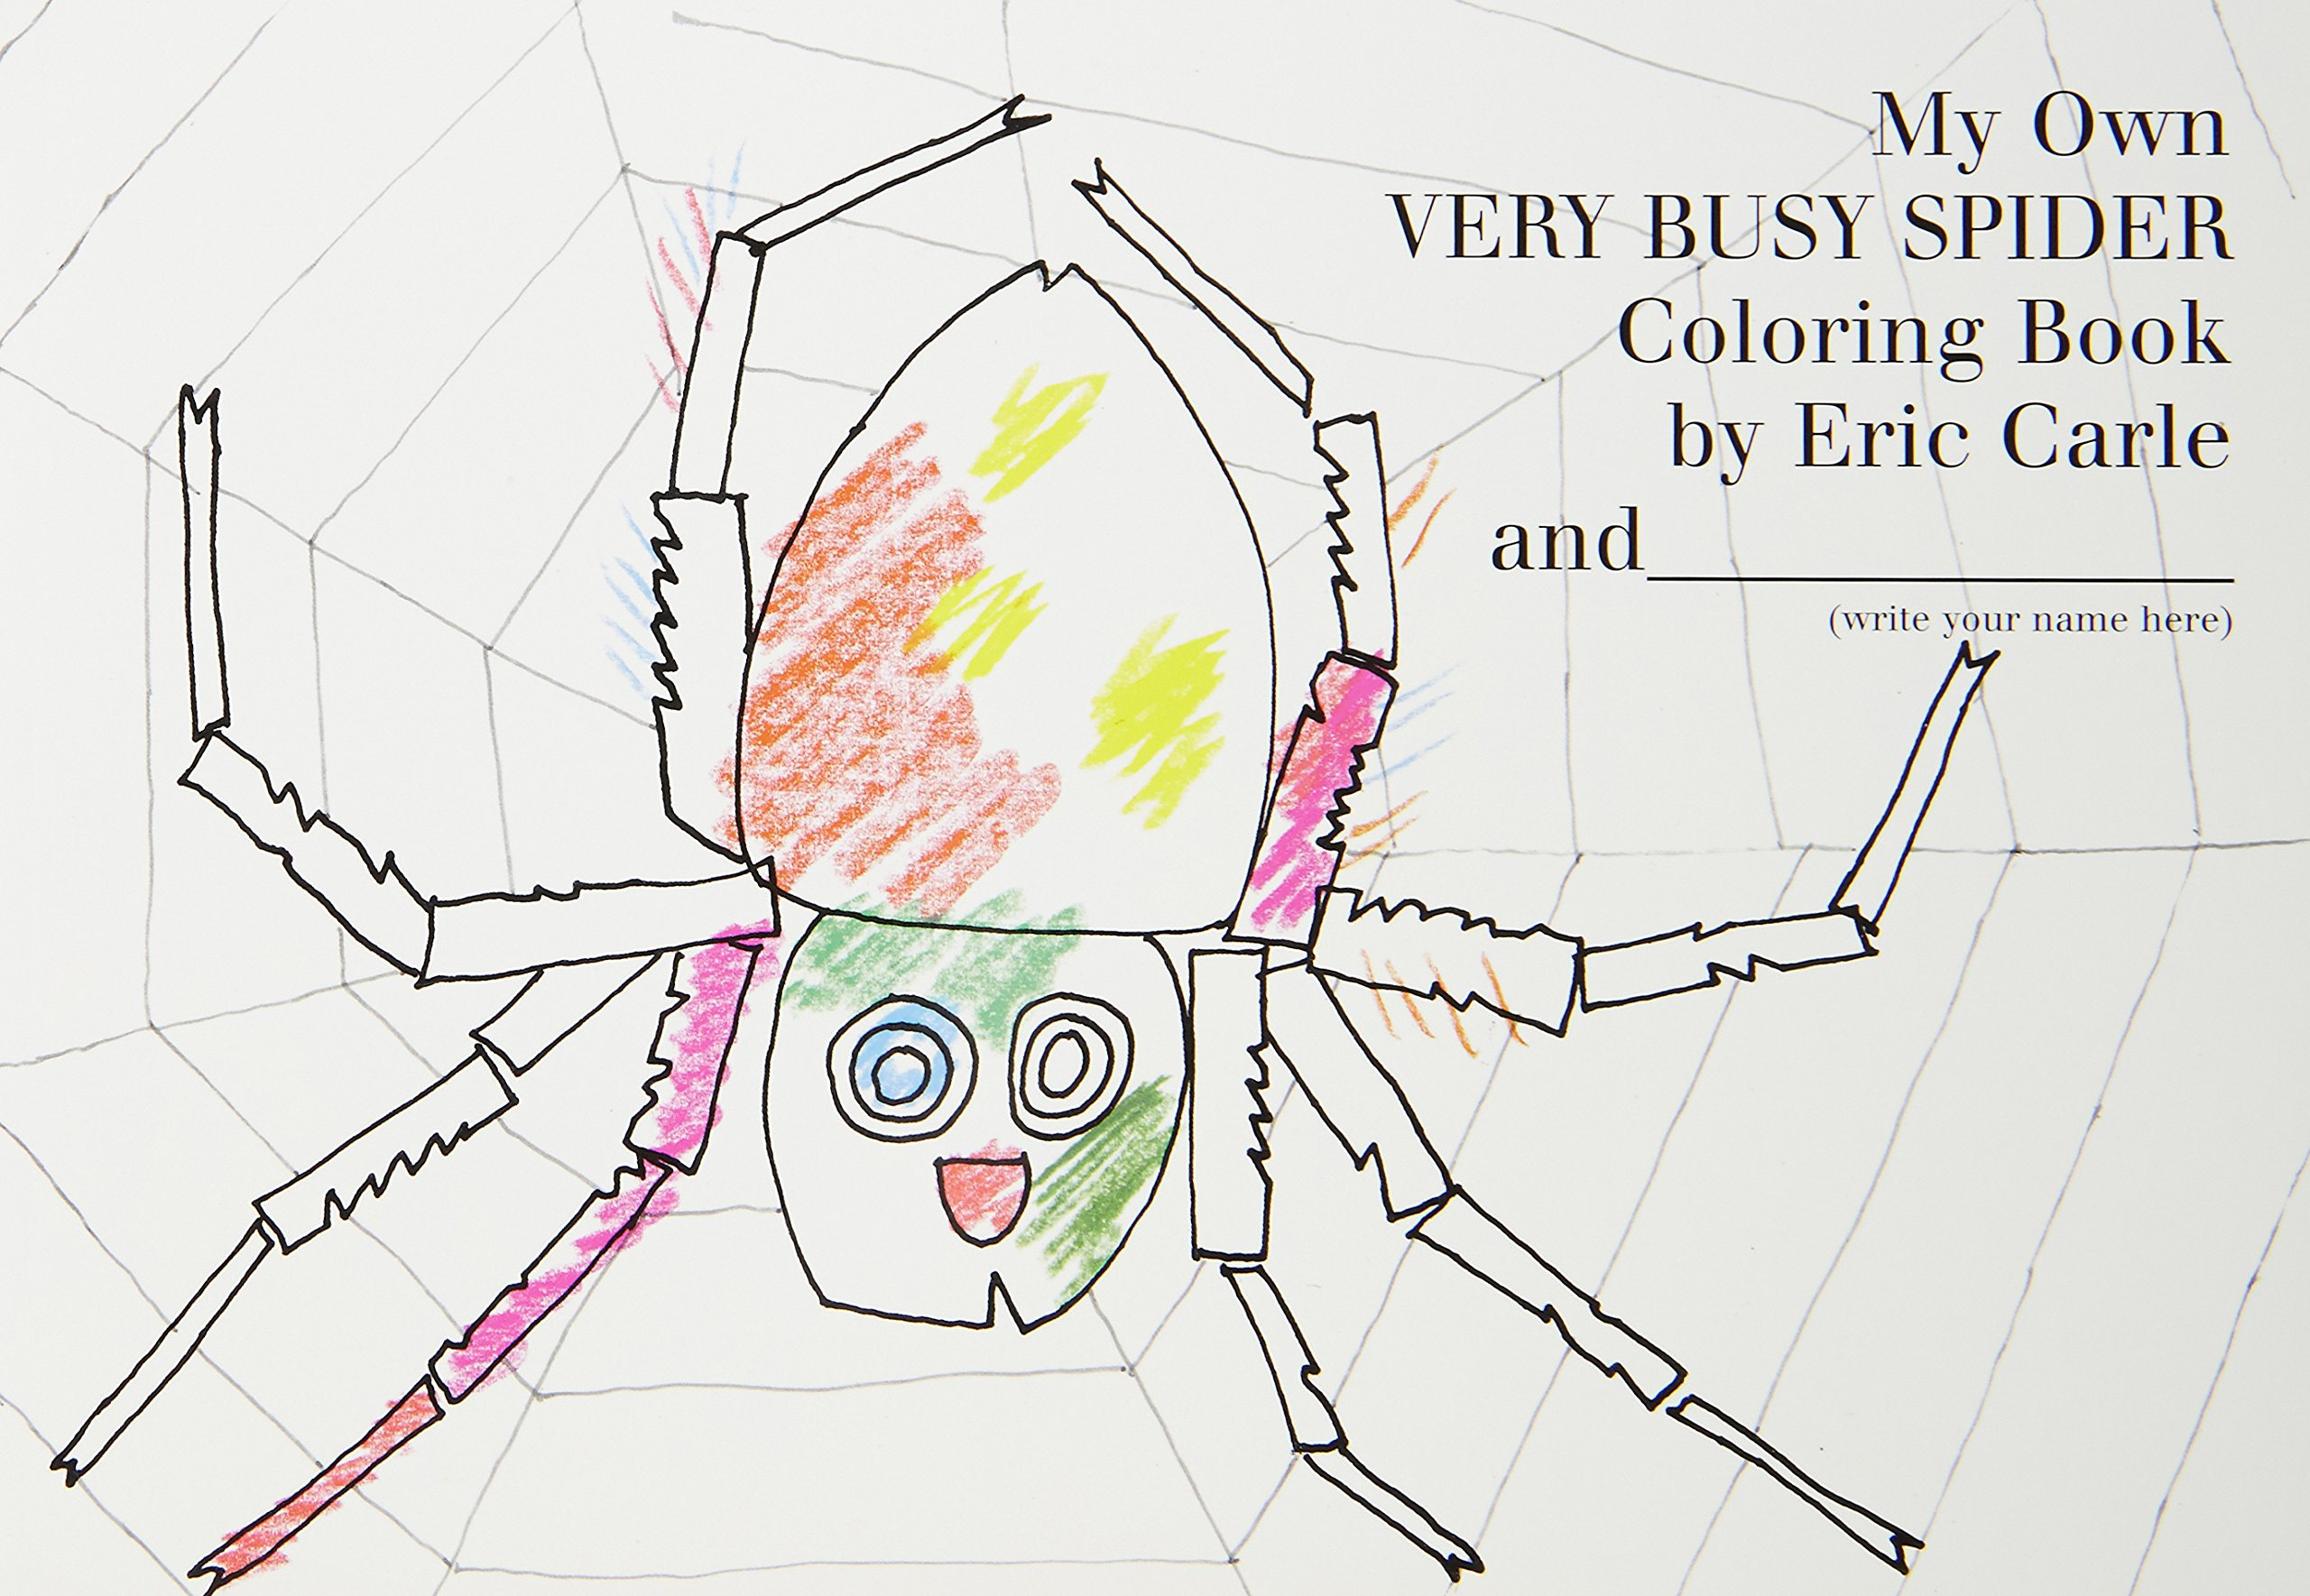 amazon com my own very busy spider coloring book 9780399243097